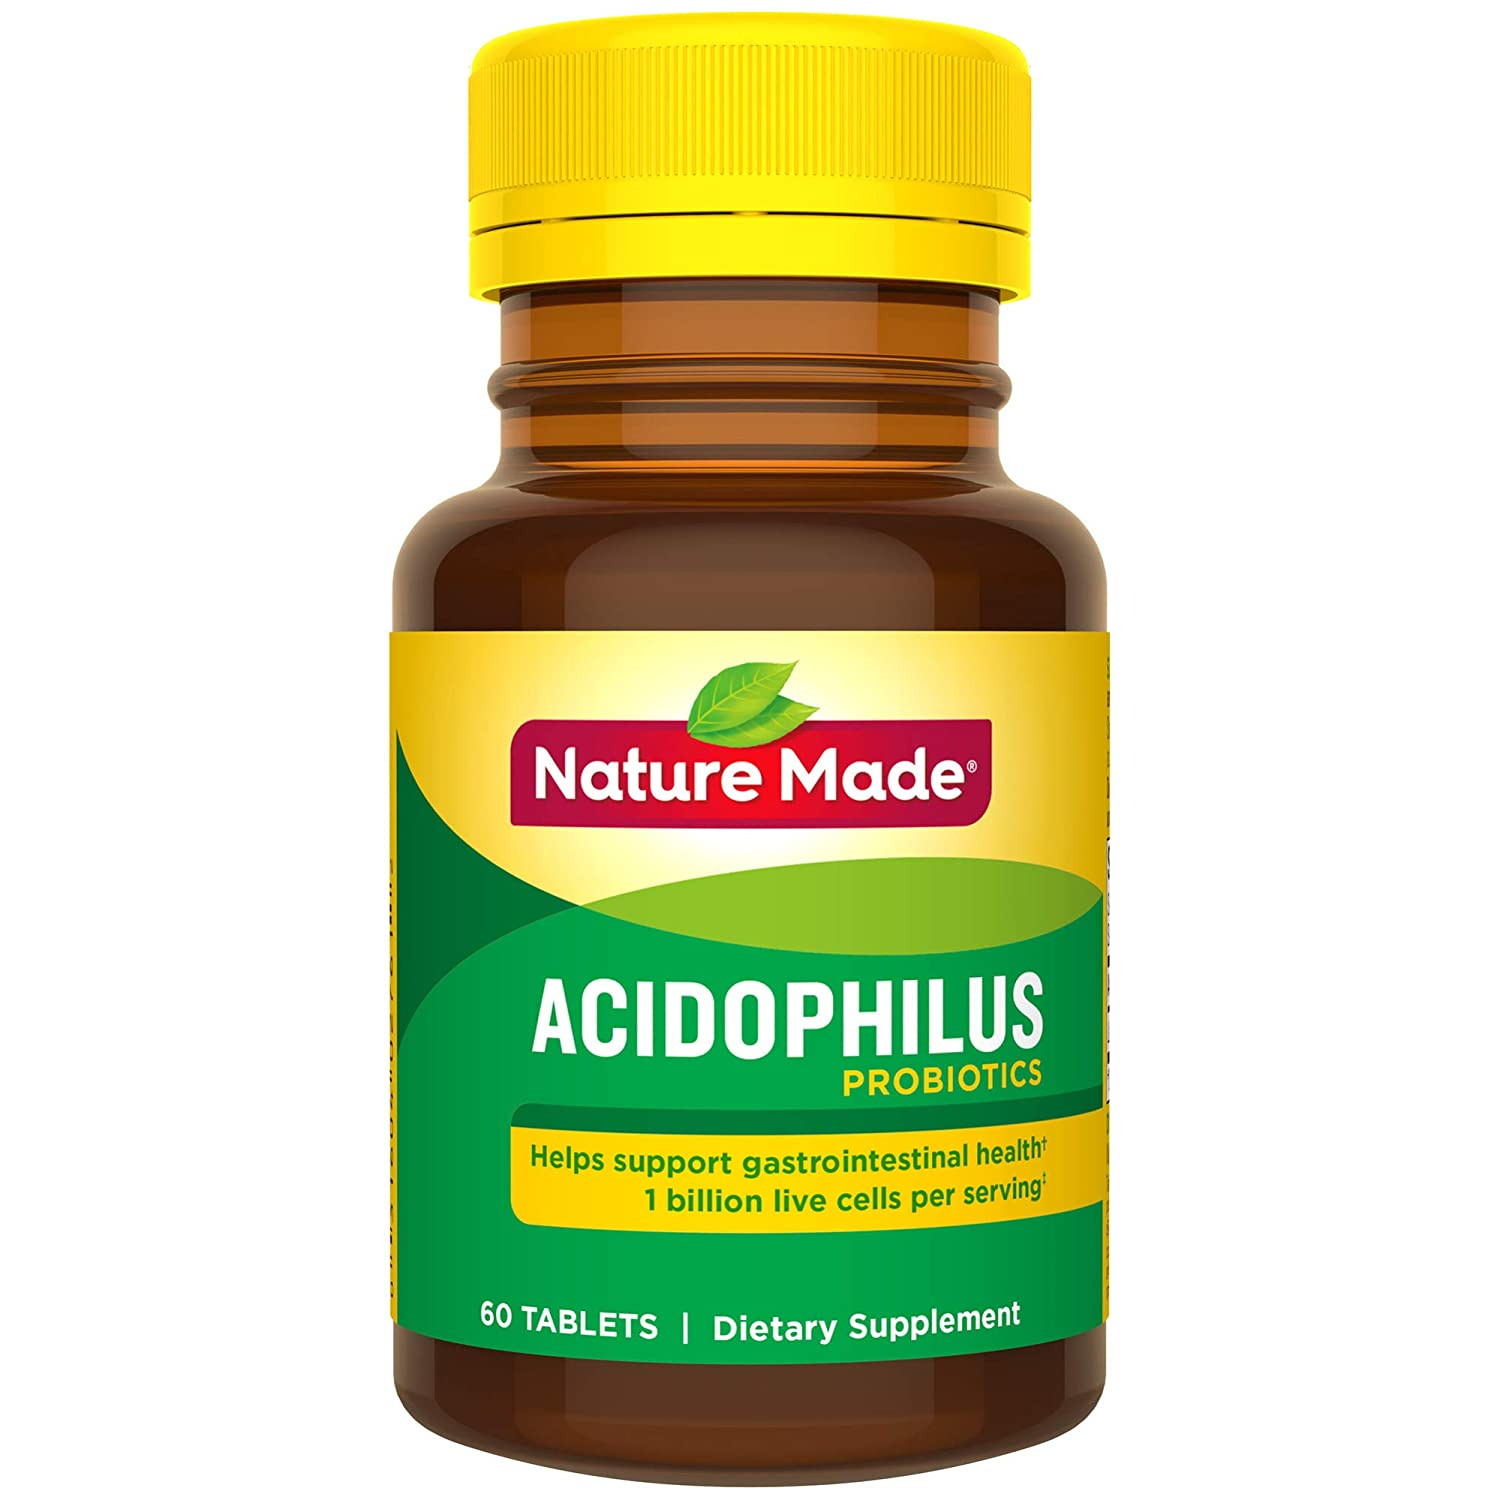 Nature Made Acidophilus Probiotics Tablets, 1 Billion CFU per serving,60 Count for Digestive Balance† (Packaging May Vary)